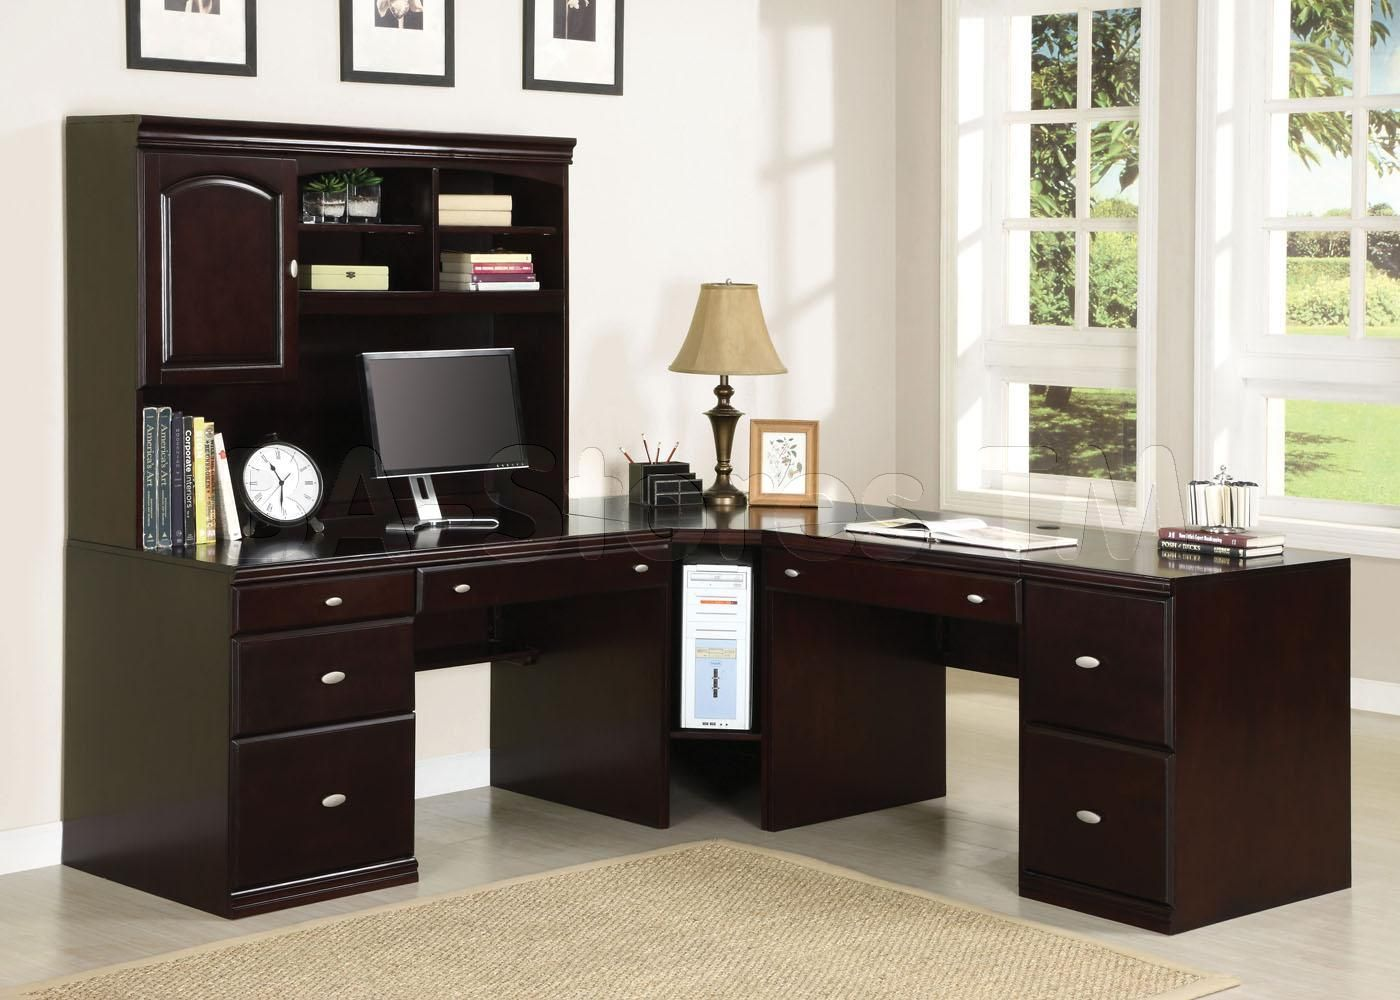 study furniture wood cherry thedigitalhandshake shaped computer rocket white size full solid and image office real hutch workstation black desk graham corner uncle credenza of modular with narrow secretary build home l